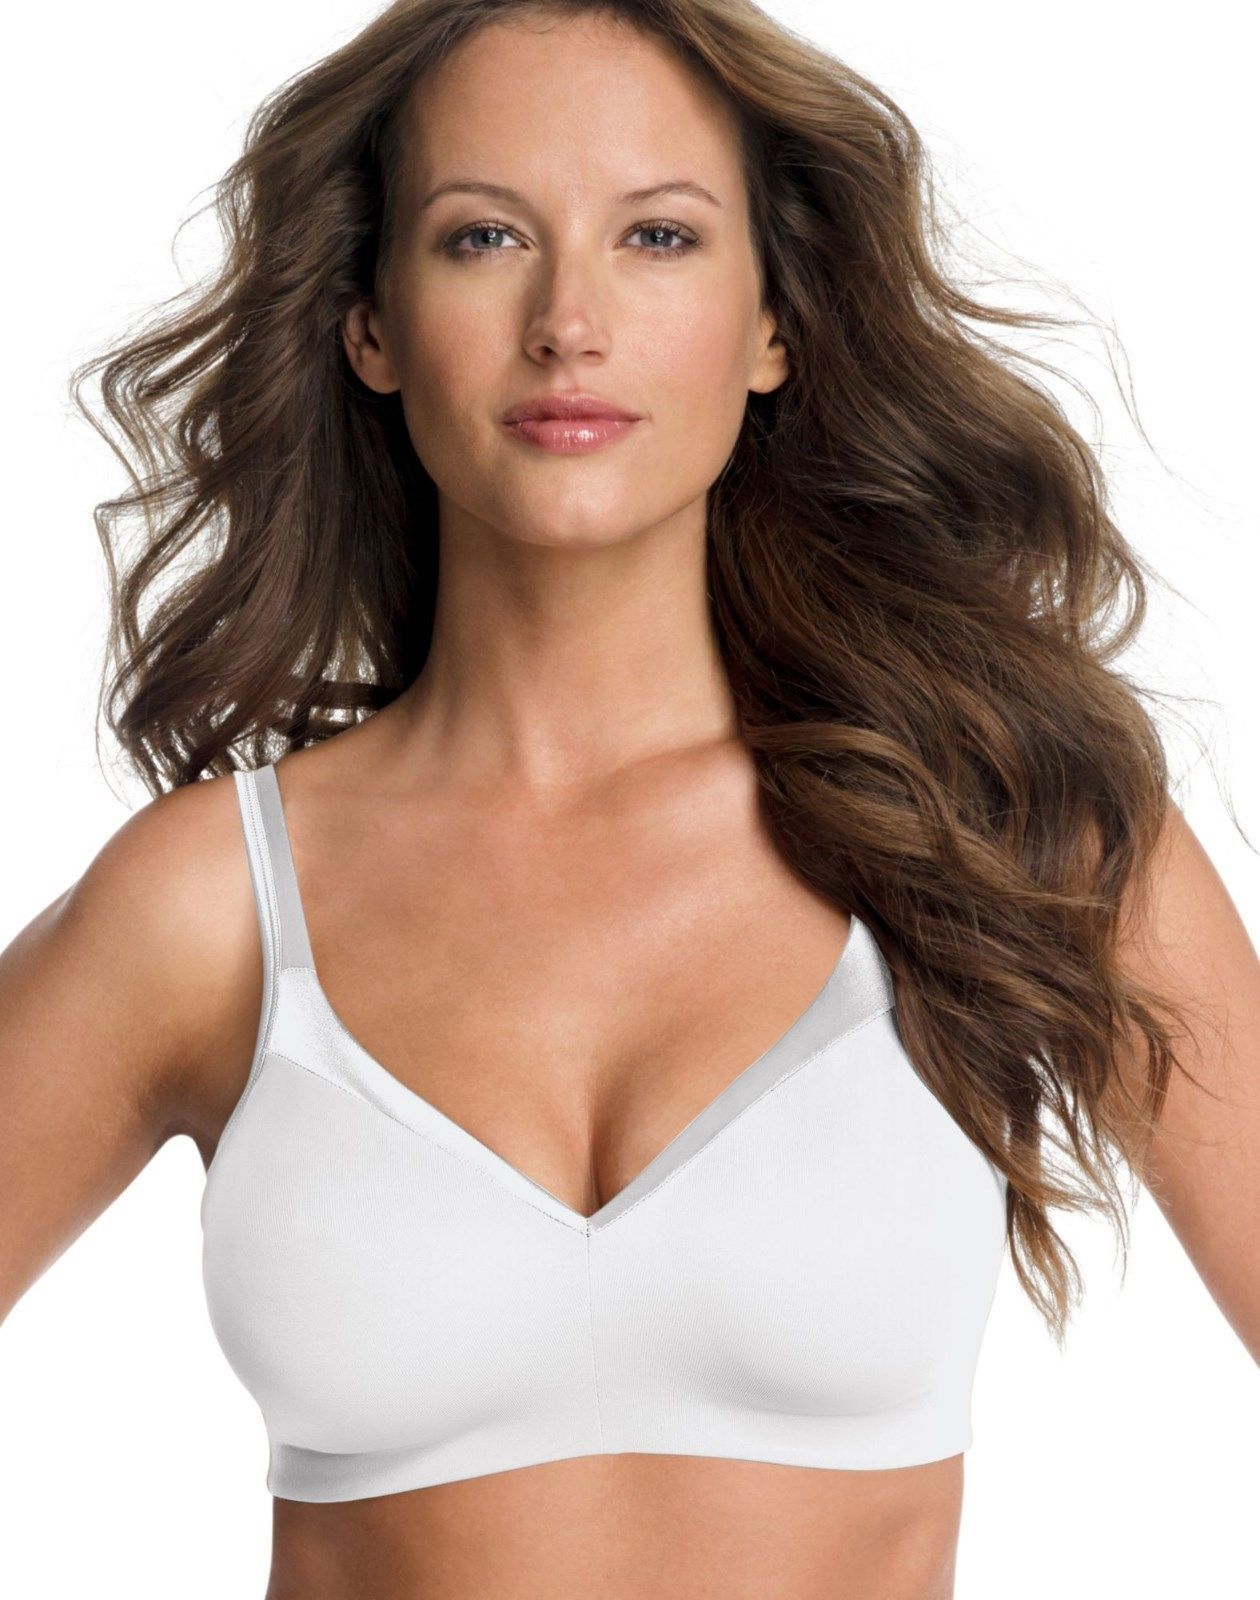 ecbfea1909134 NEW Playtex Secrets Wirefree Bra 5676 38D and similar items